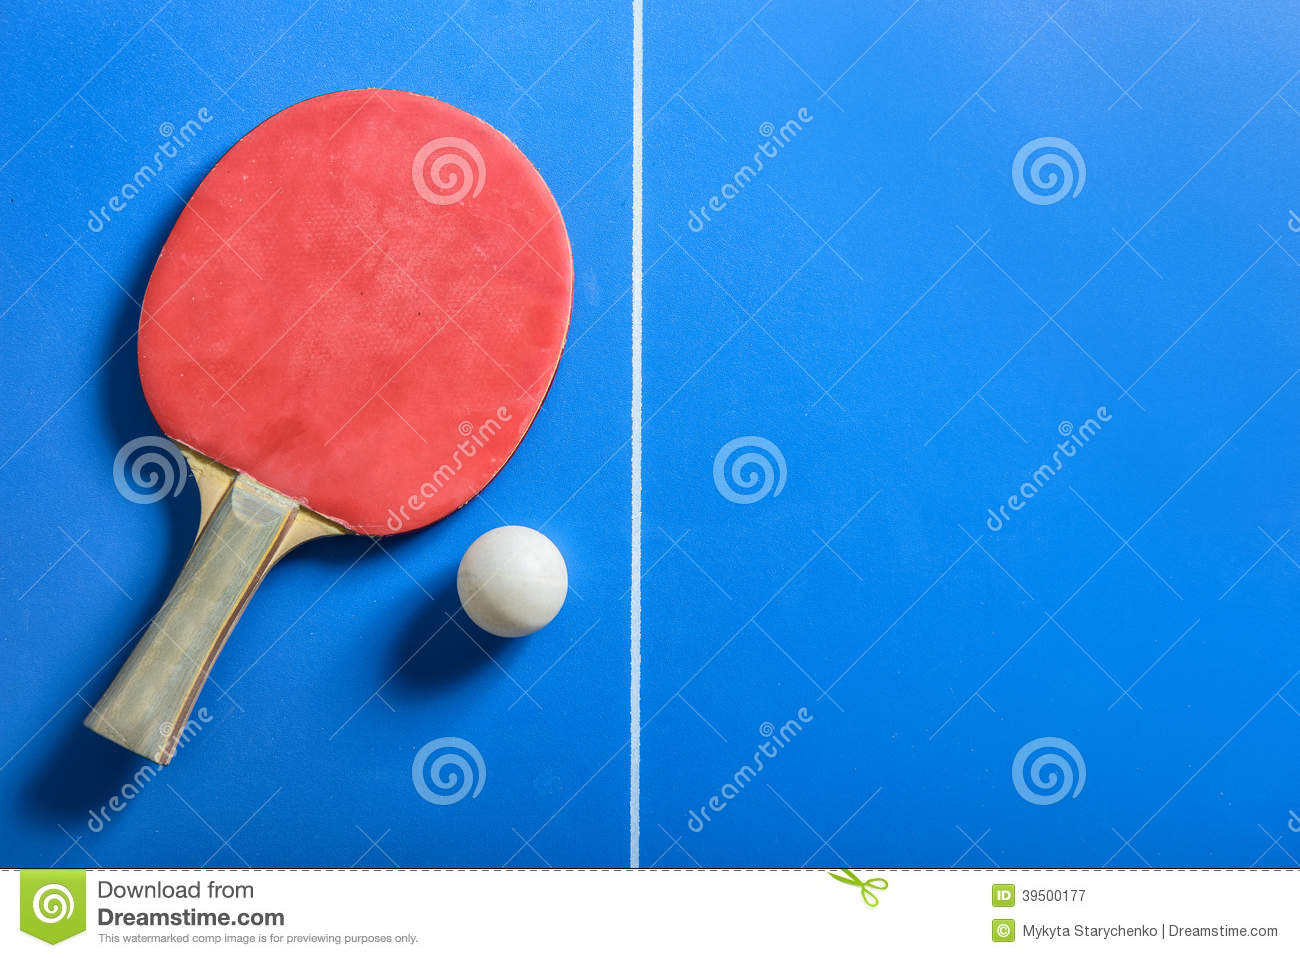 Pin pong ball and red paddle on blue board